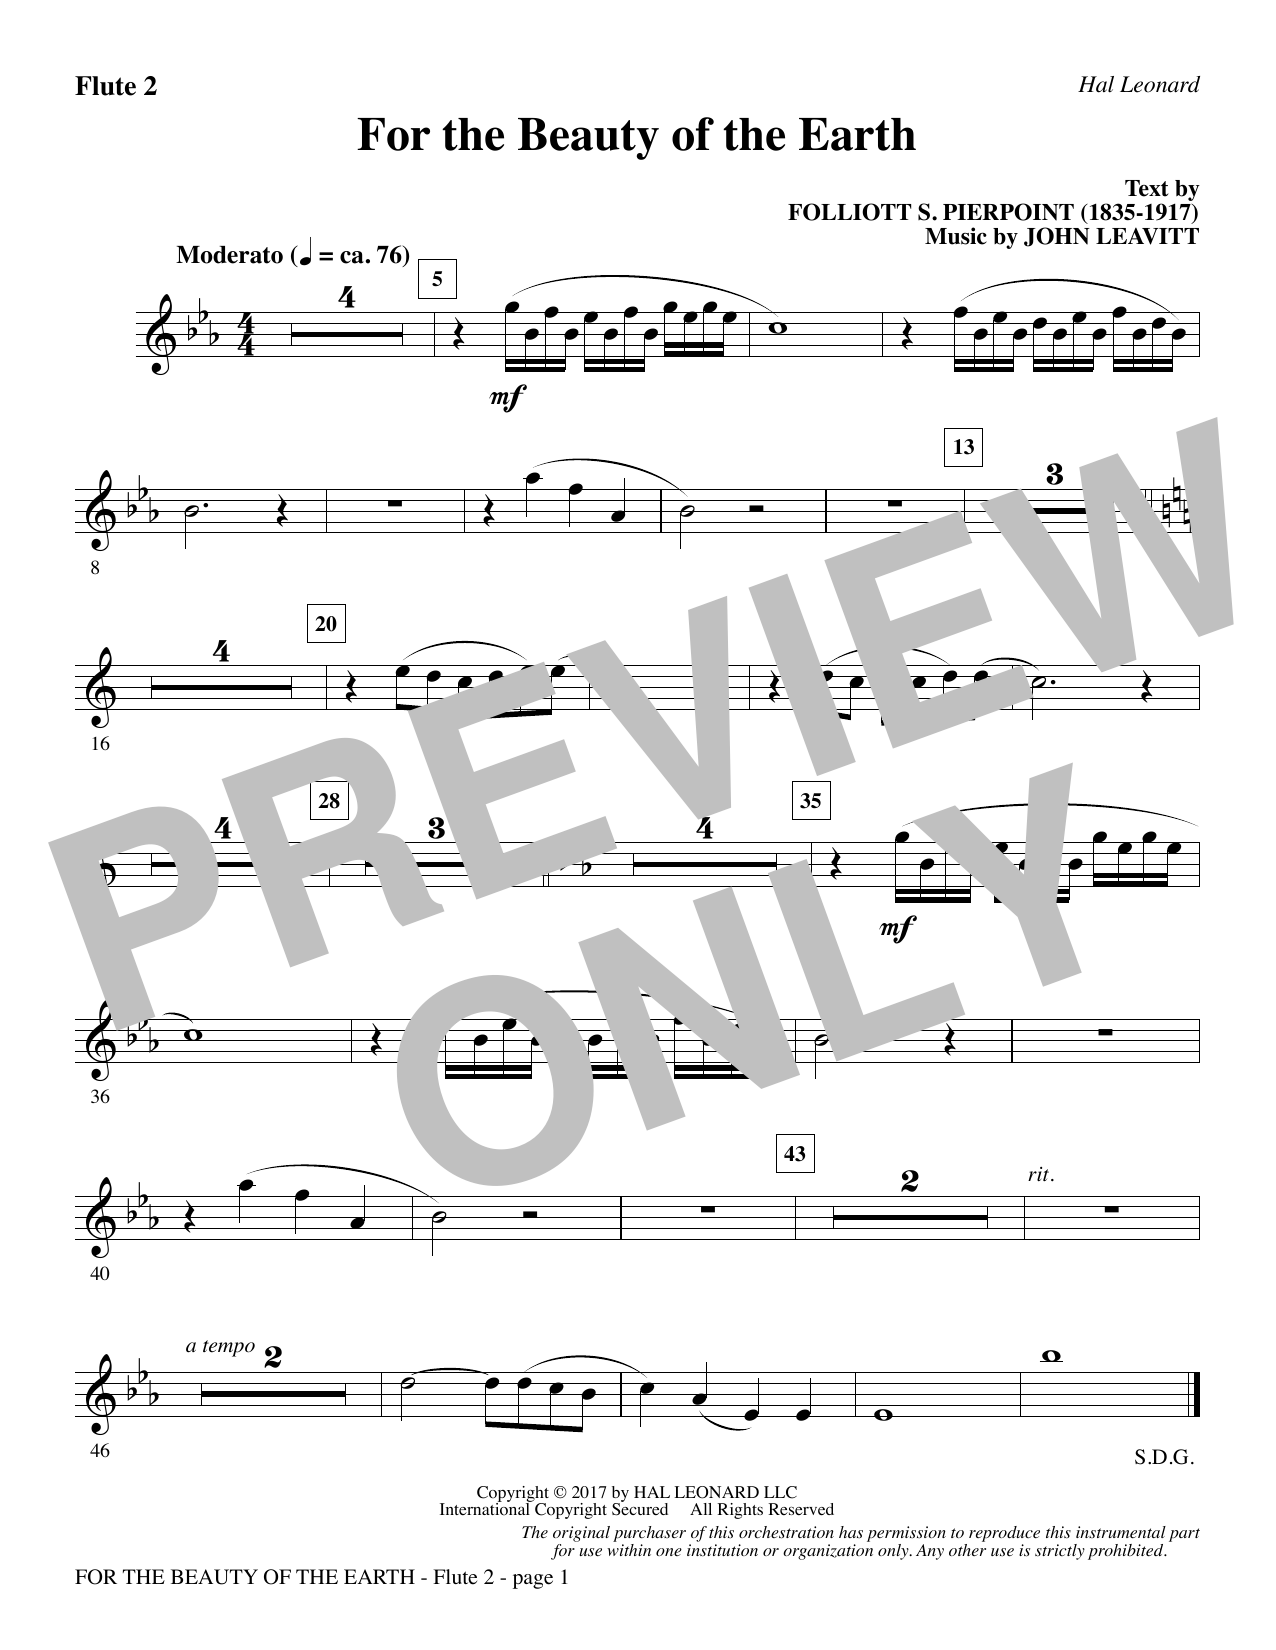 For the Beauty of the Earth - Flute 2 Sheet Music